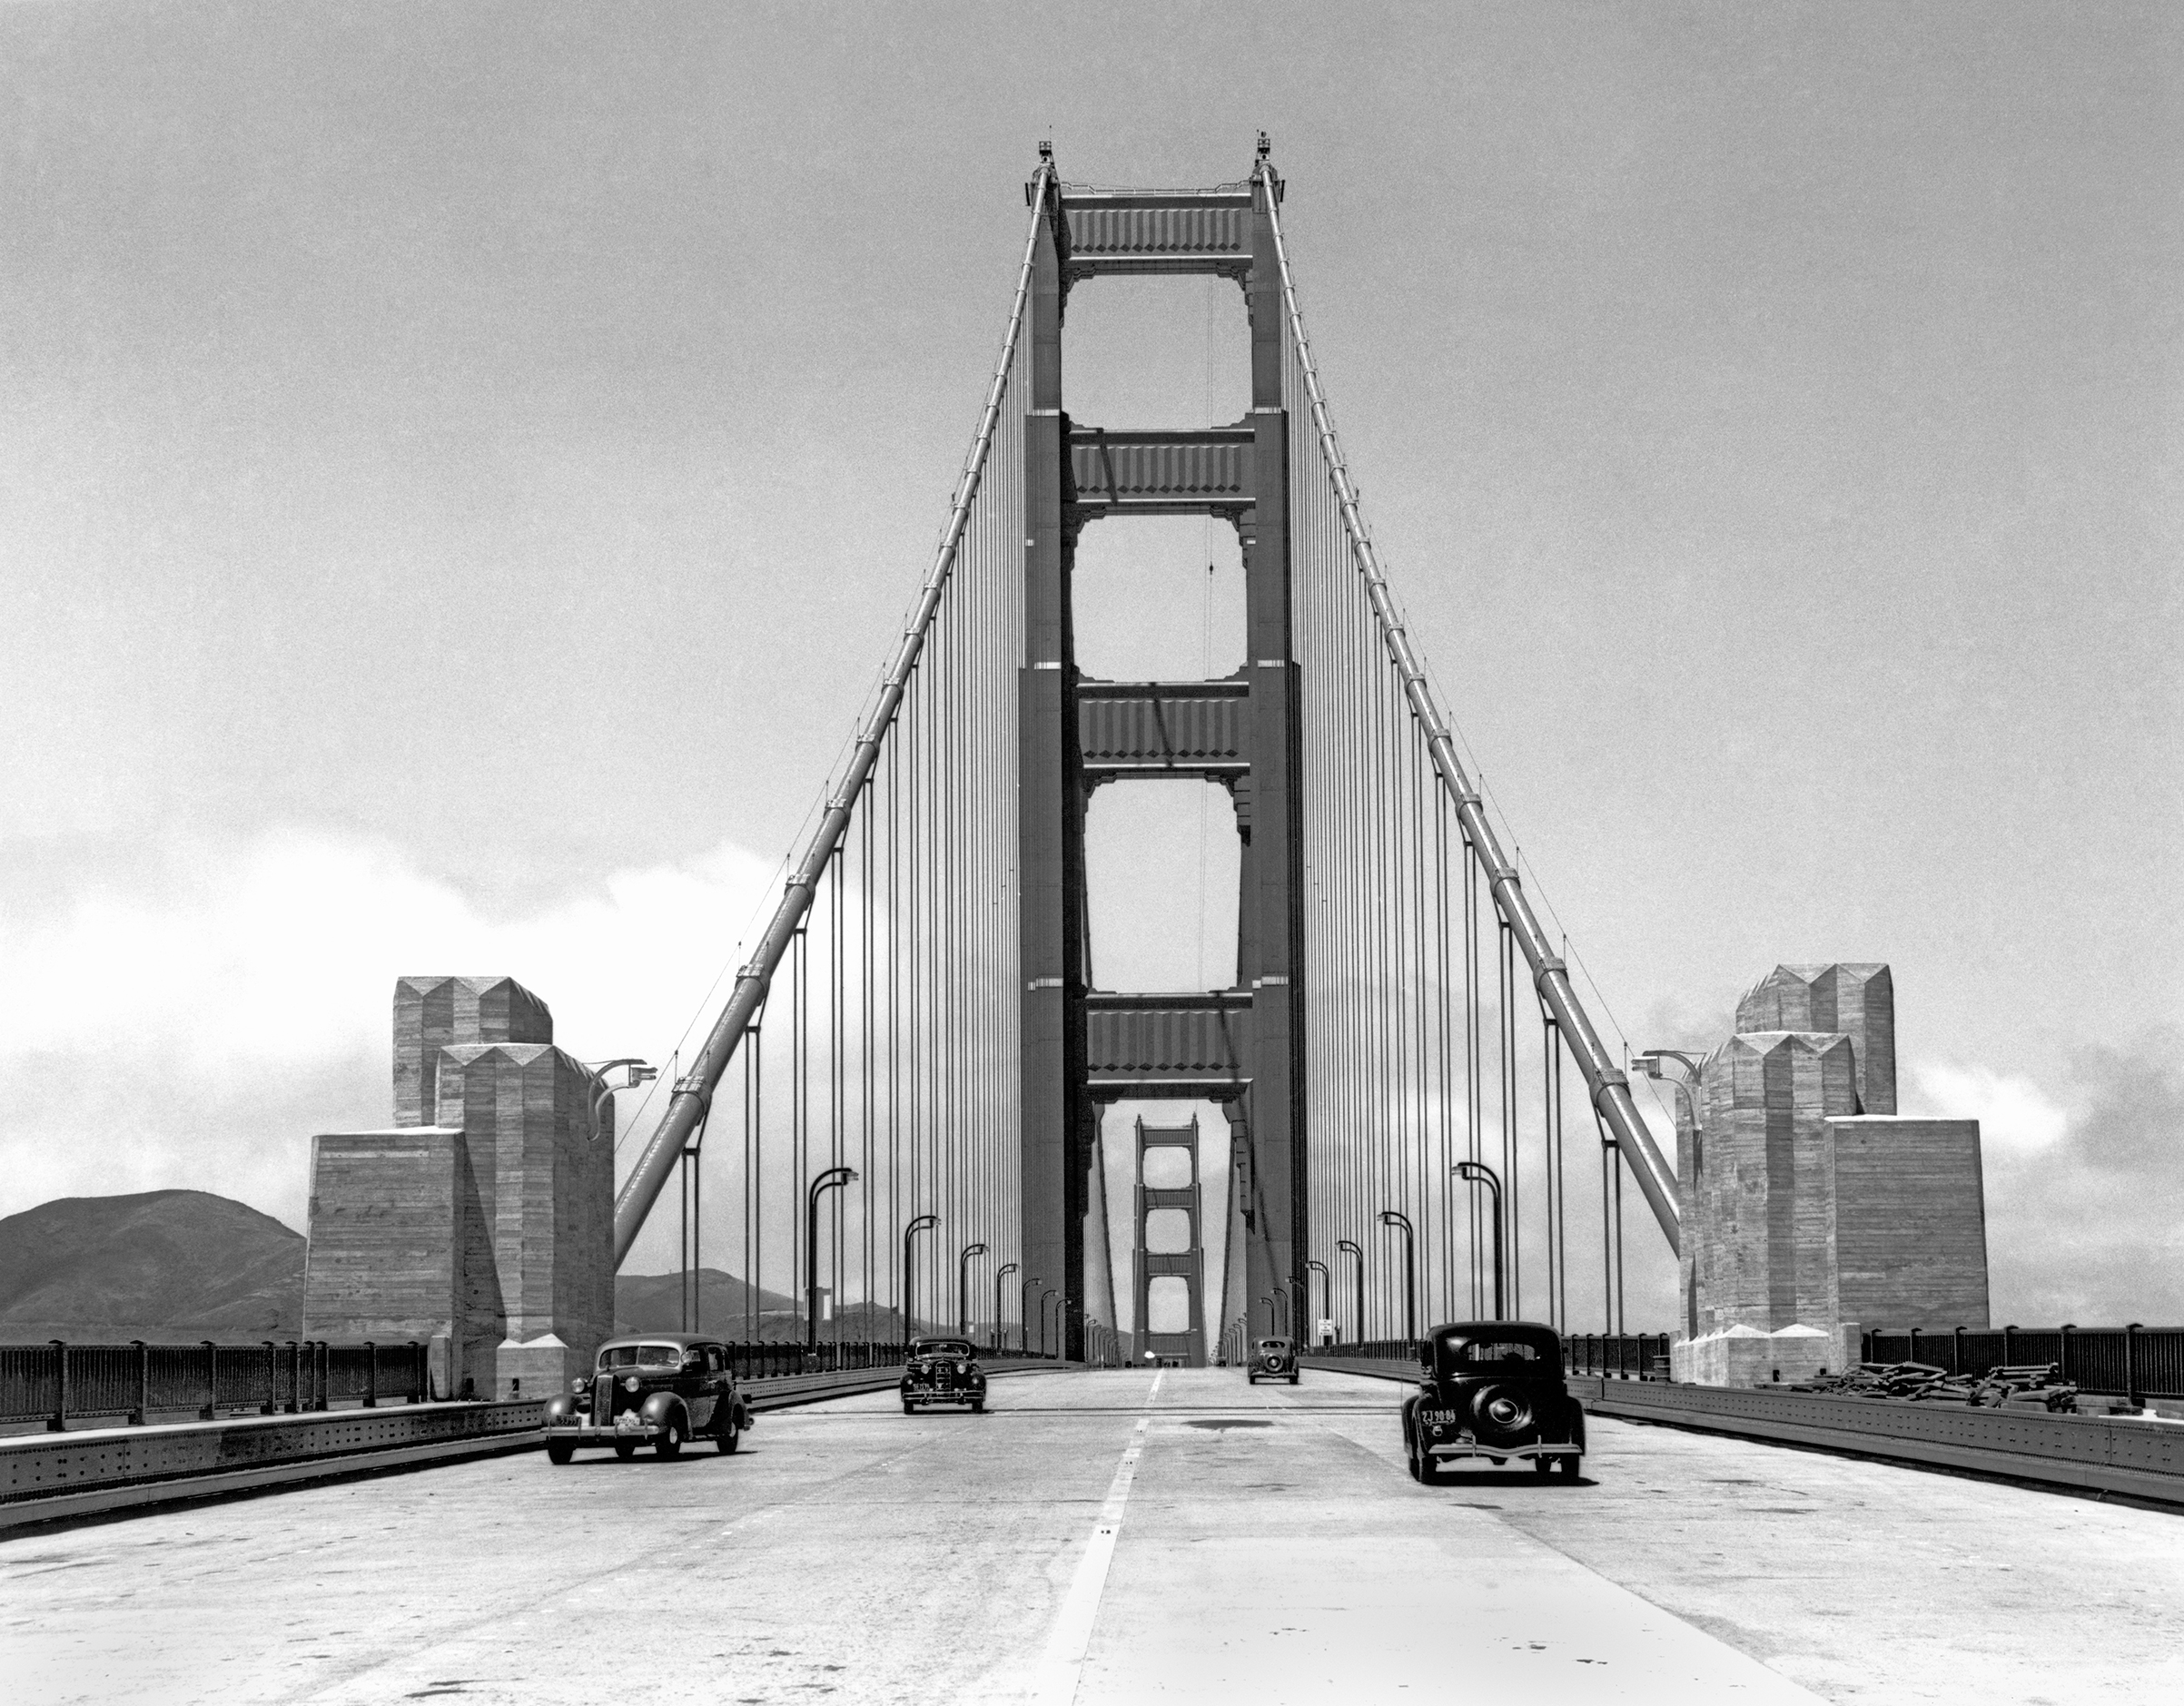 Press cars going across the about to be opened new Golden Gate Bridge, San Francisco, California, May 24, 1937.